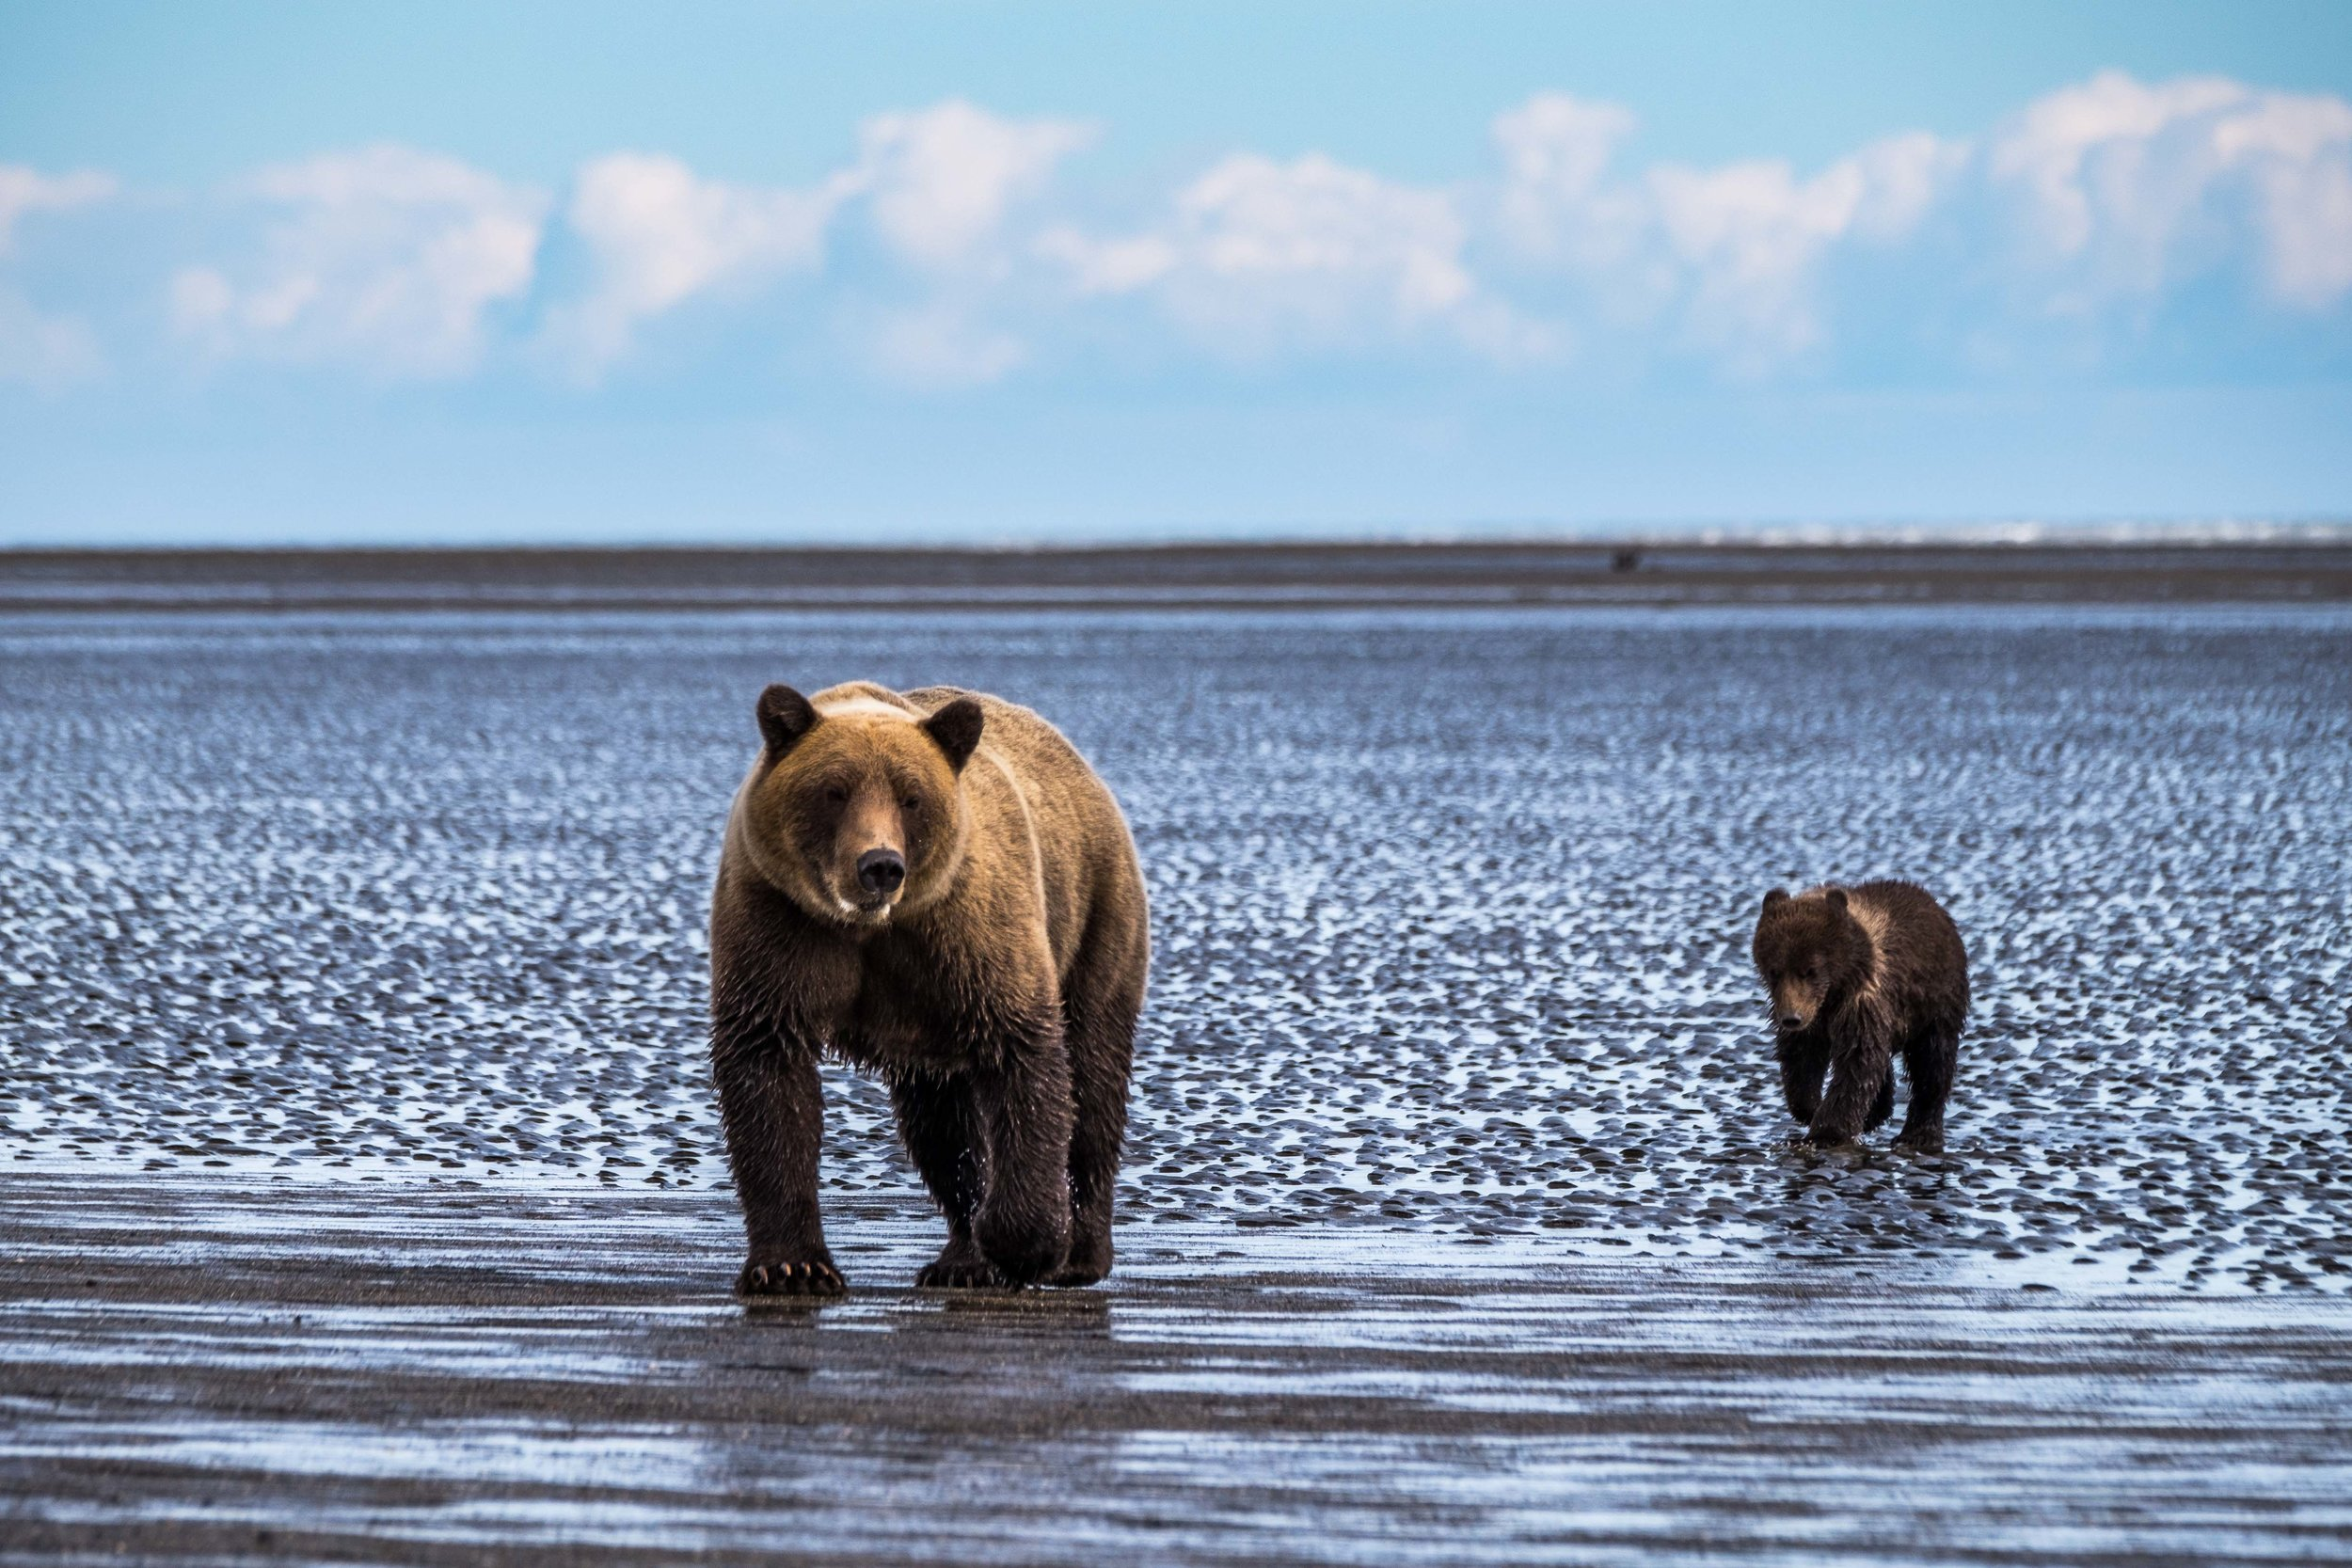 We watched as mom and the cubs came right down the beach, not far from us, and passed us right by. She trusted us to be that close to her cubs, which was incredible.